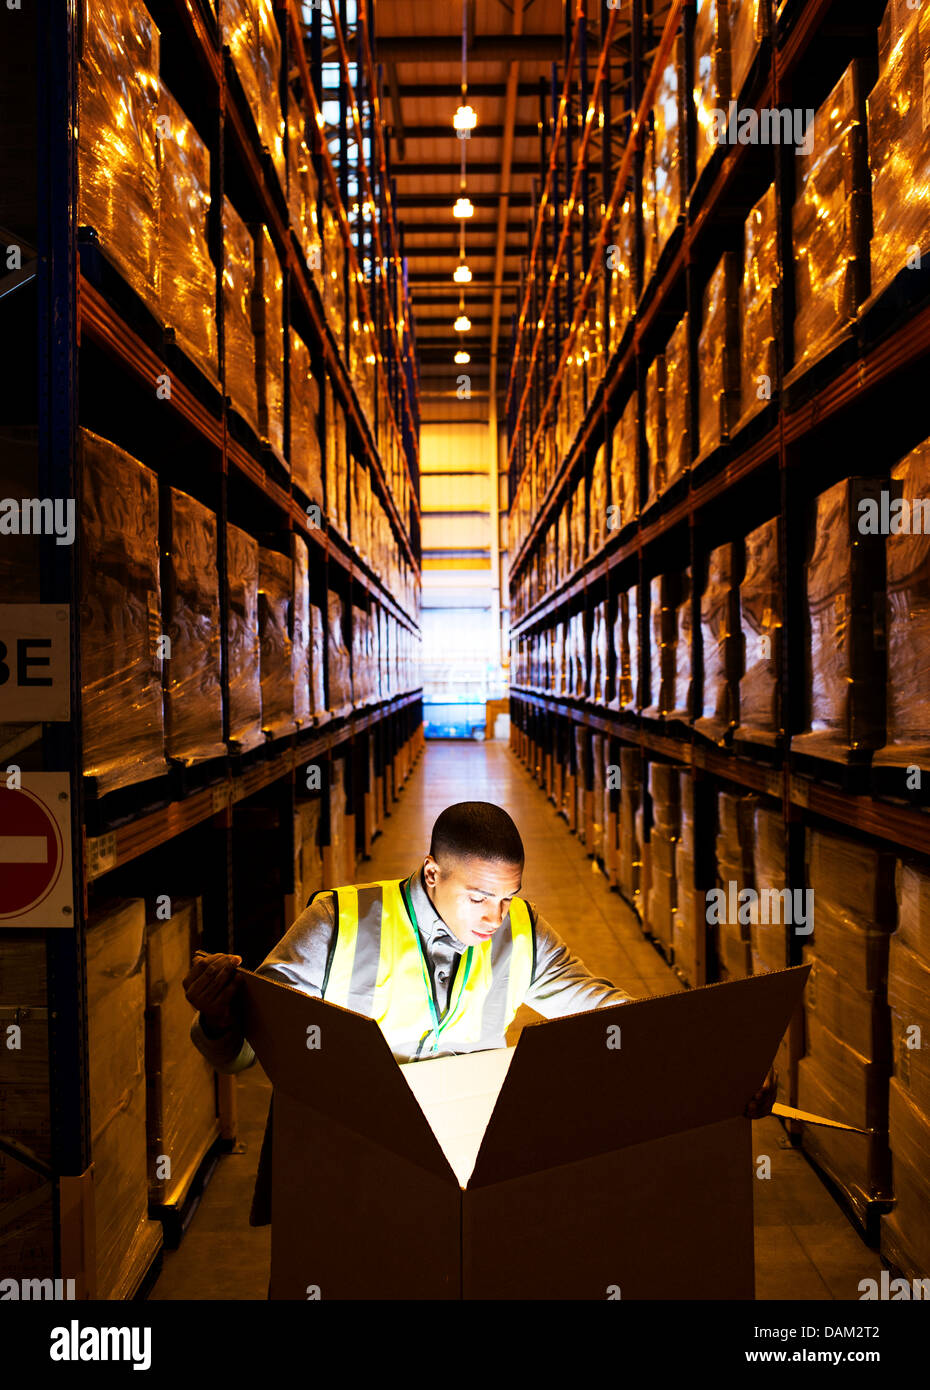 Worker opening glowing box in warehouse - Stock Image